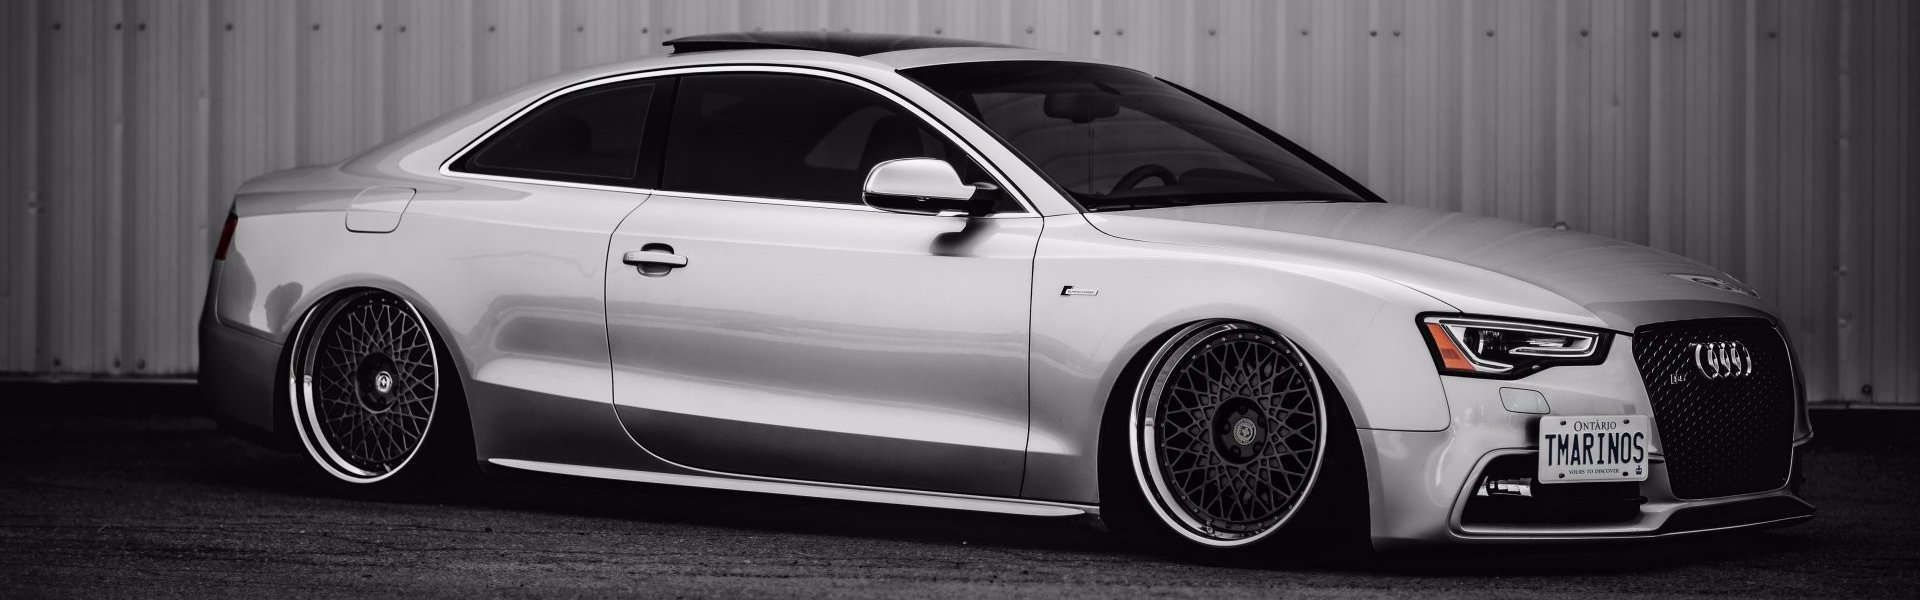 Audi S5 silver stance-тюнинг